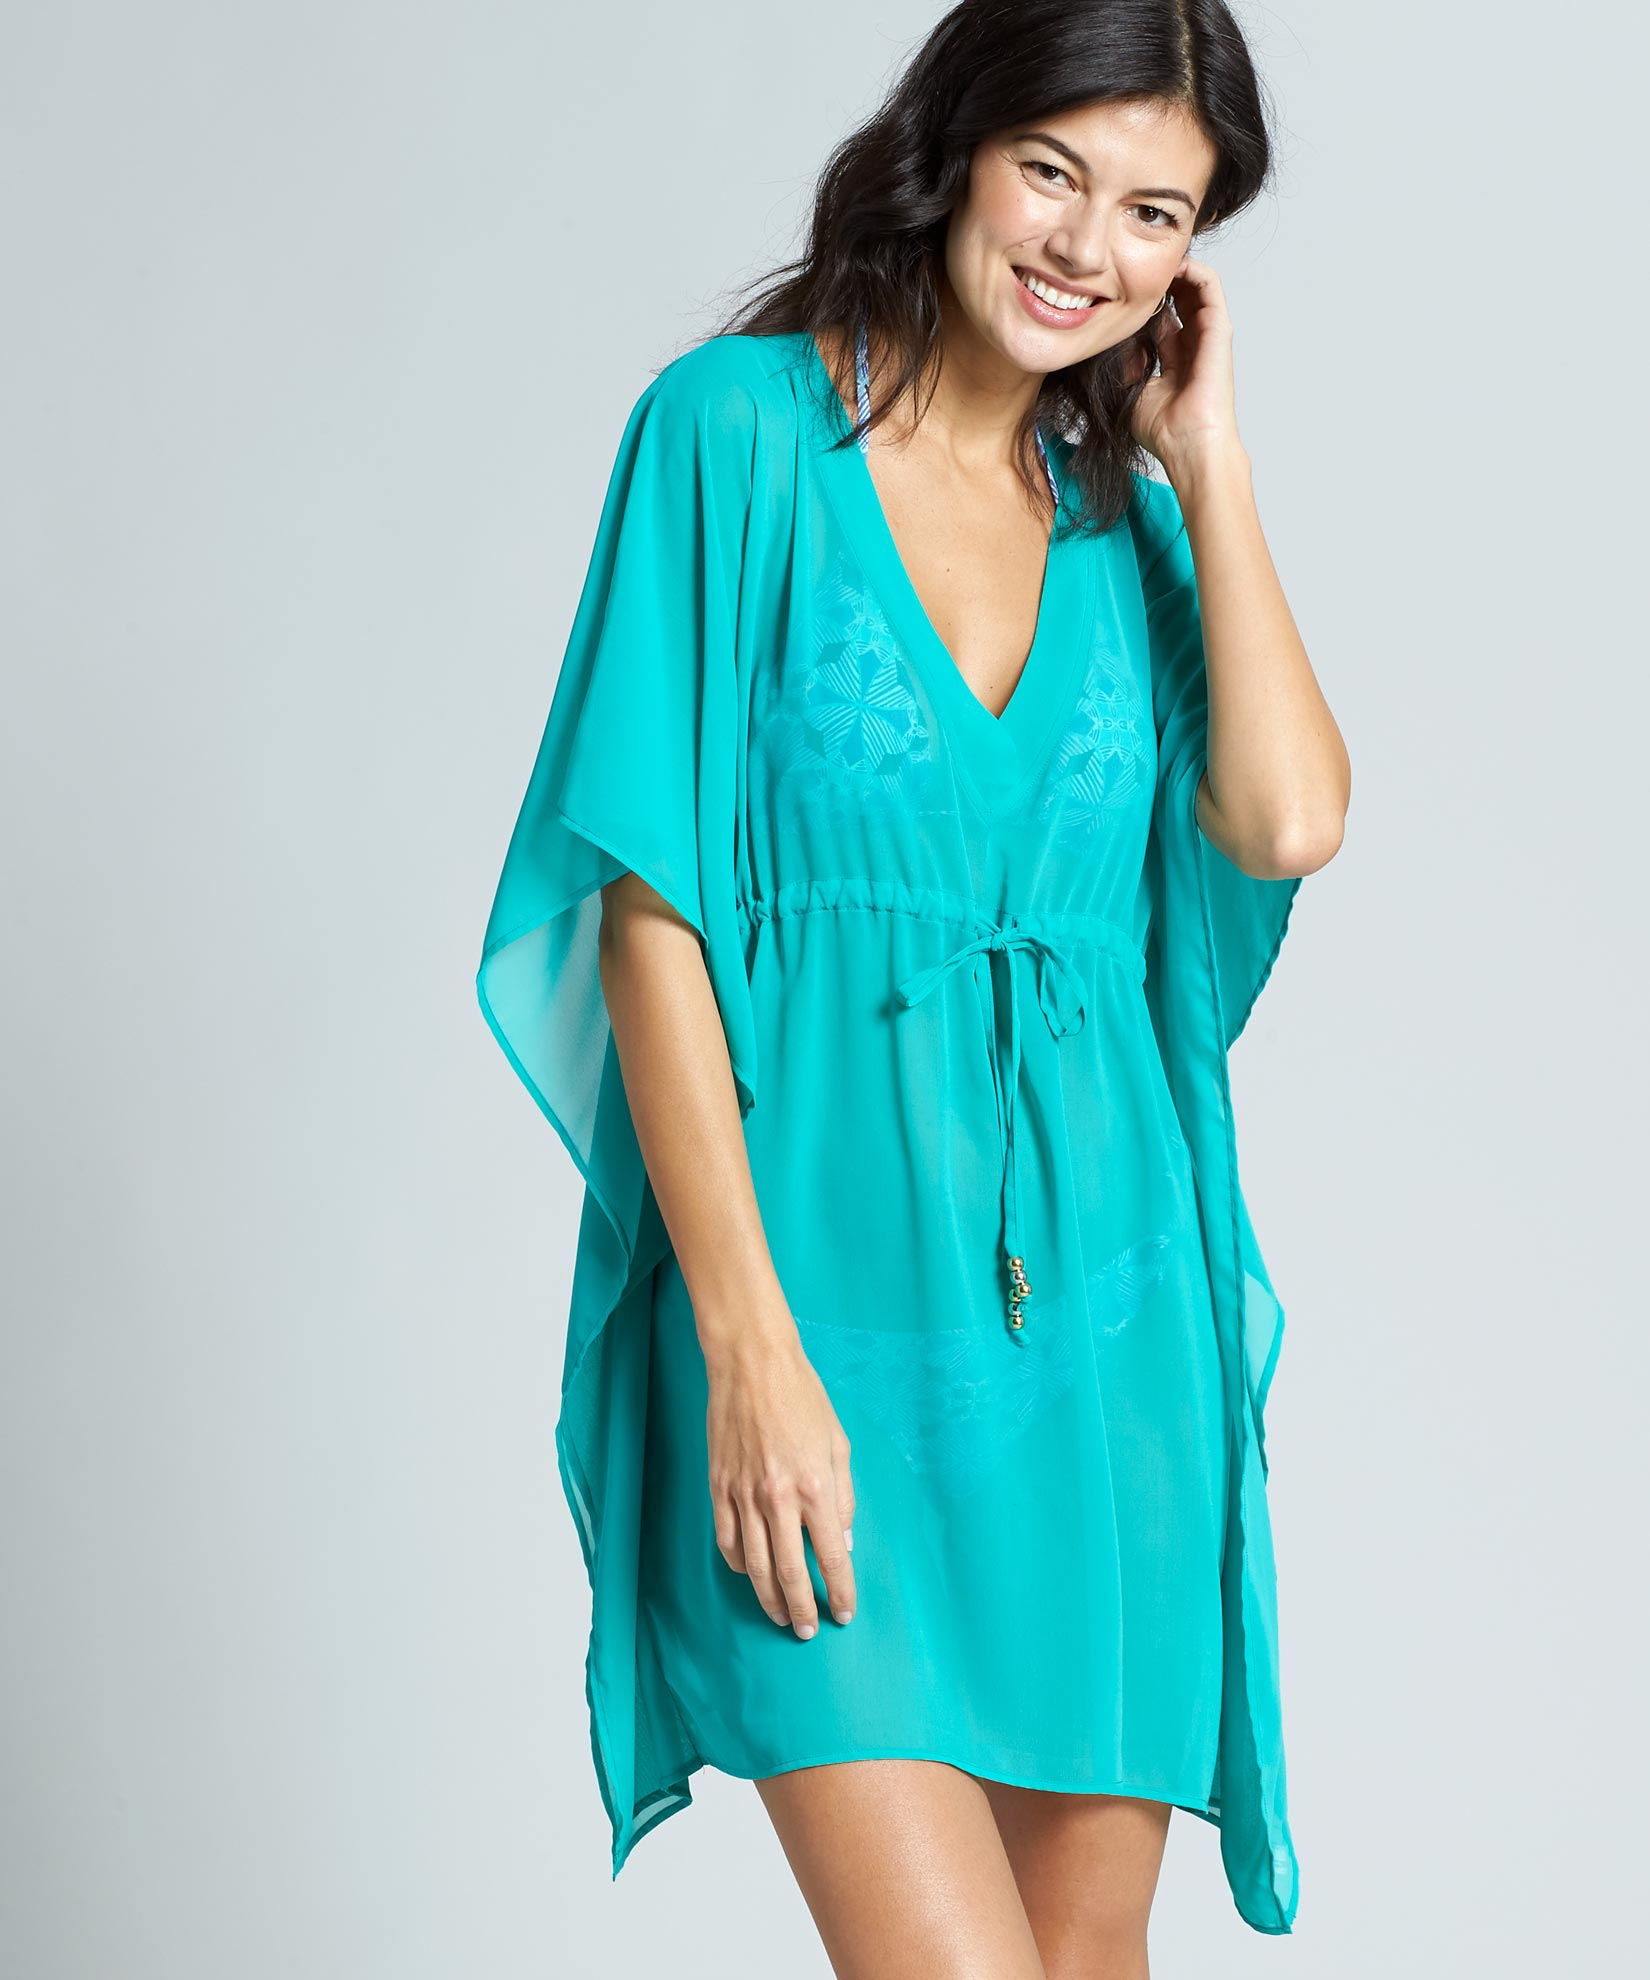 Emerald Sea - Butterfly Caftan